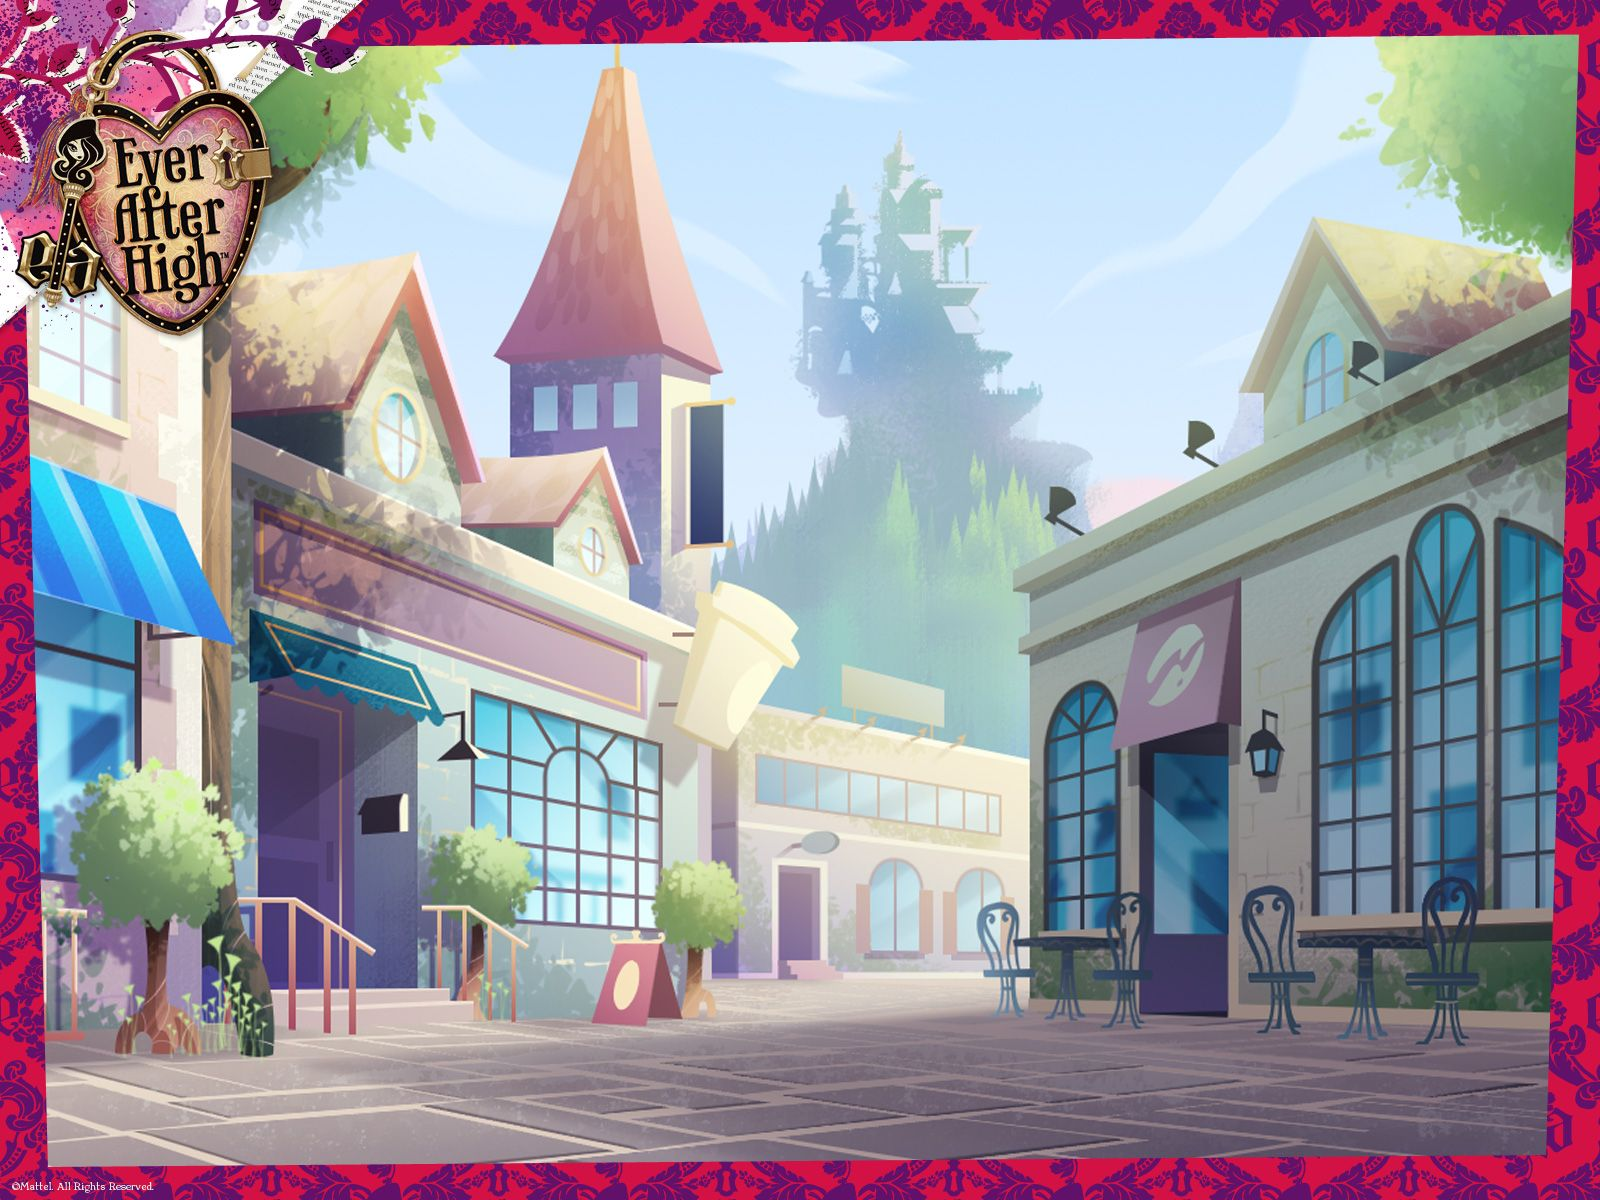 ever after high background - Google Search   ever after ...